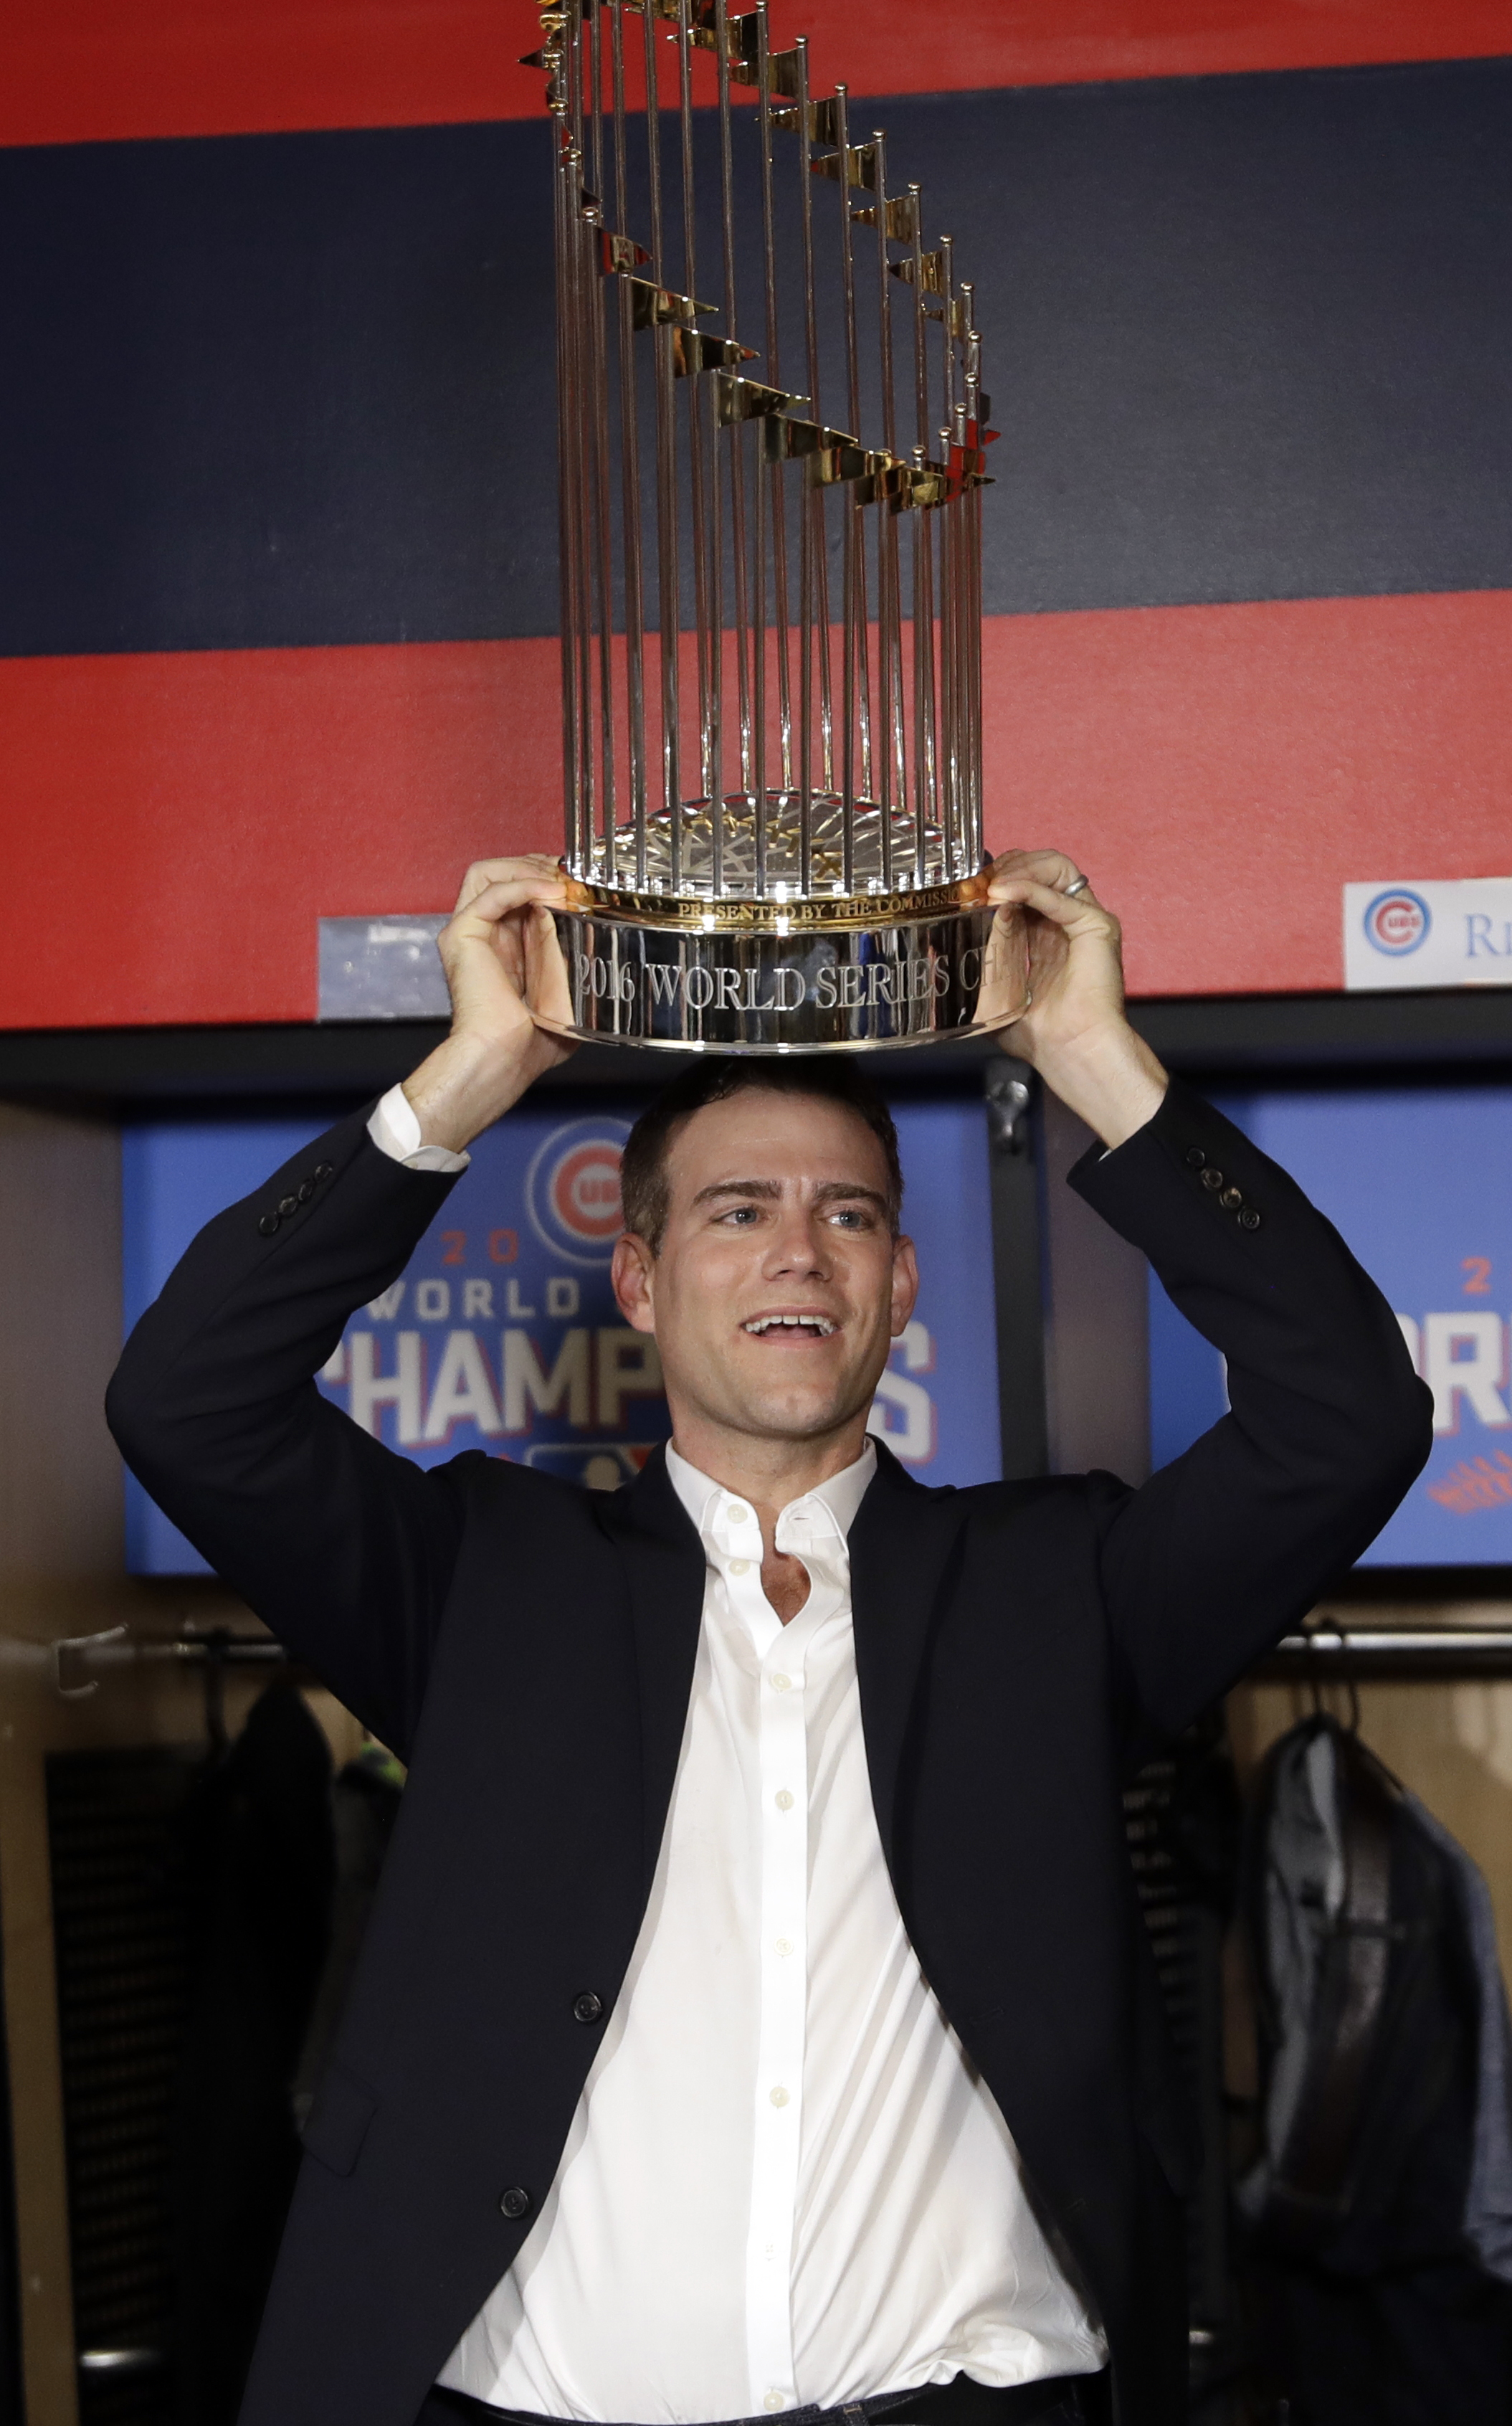 Chicago Cubs president for baseball operations Theo Epstein celebrates after Game 7 of the Major League Baseball World Series Thursday, Nov. 3, 2016, in Cleveland. The Cubs won 8-7 in 10 innings to win the series 4-3. (AP Photo/David J. Phillip)